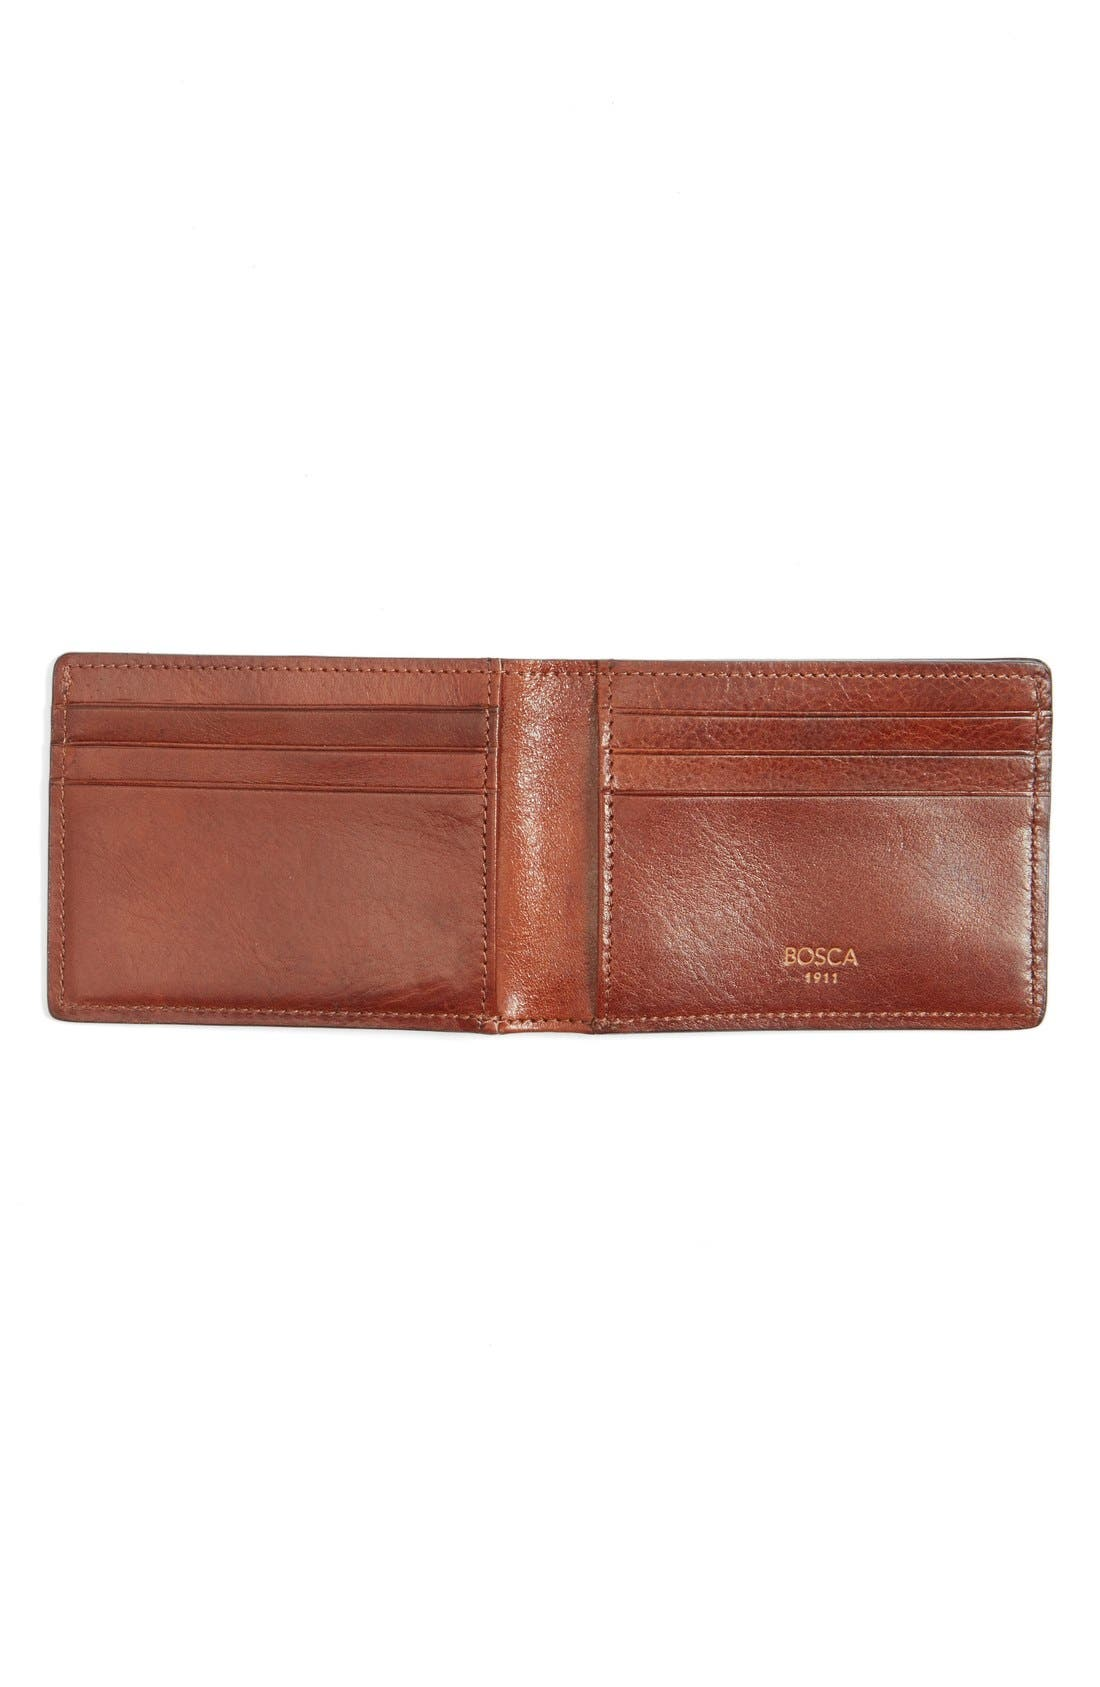 Leather Bifold Wallet,                             Alternate thumbnail 2, color,                             Amber